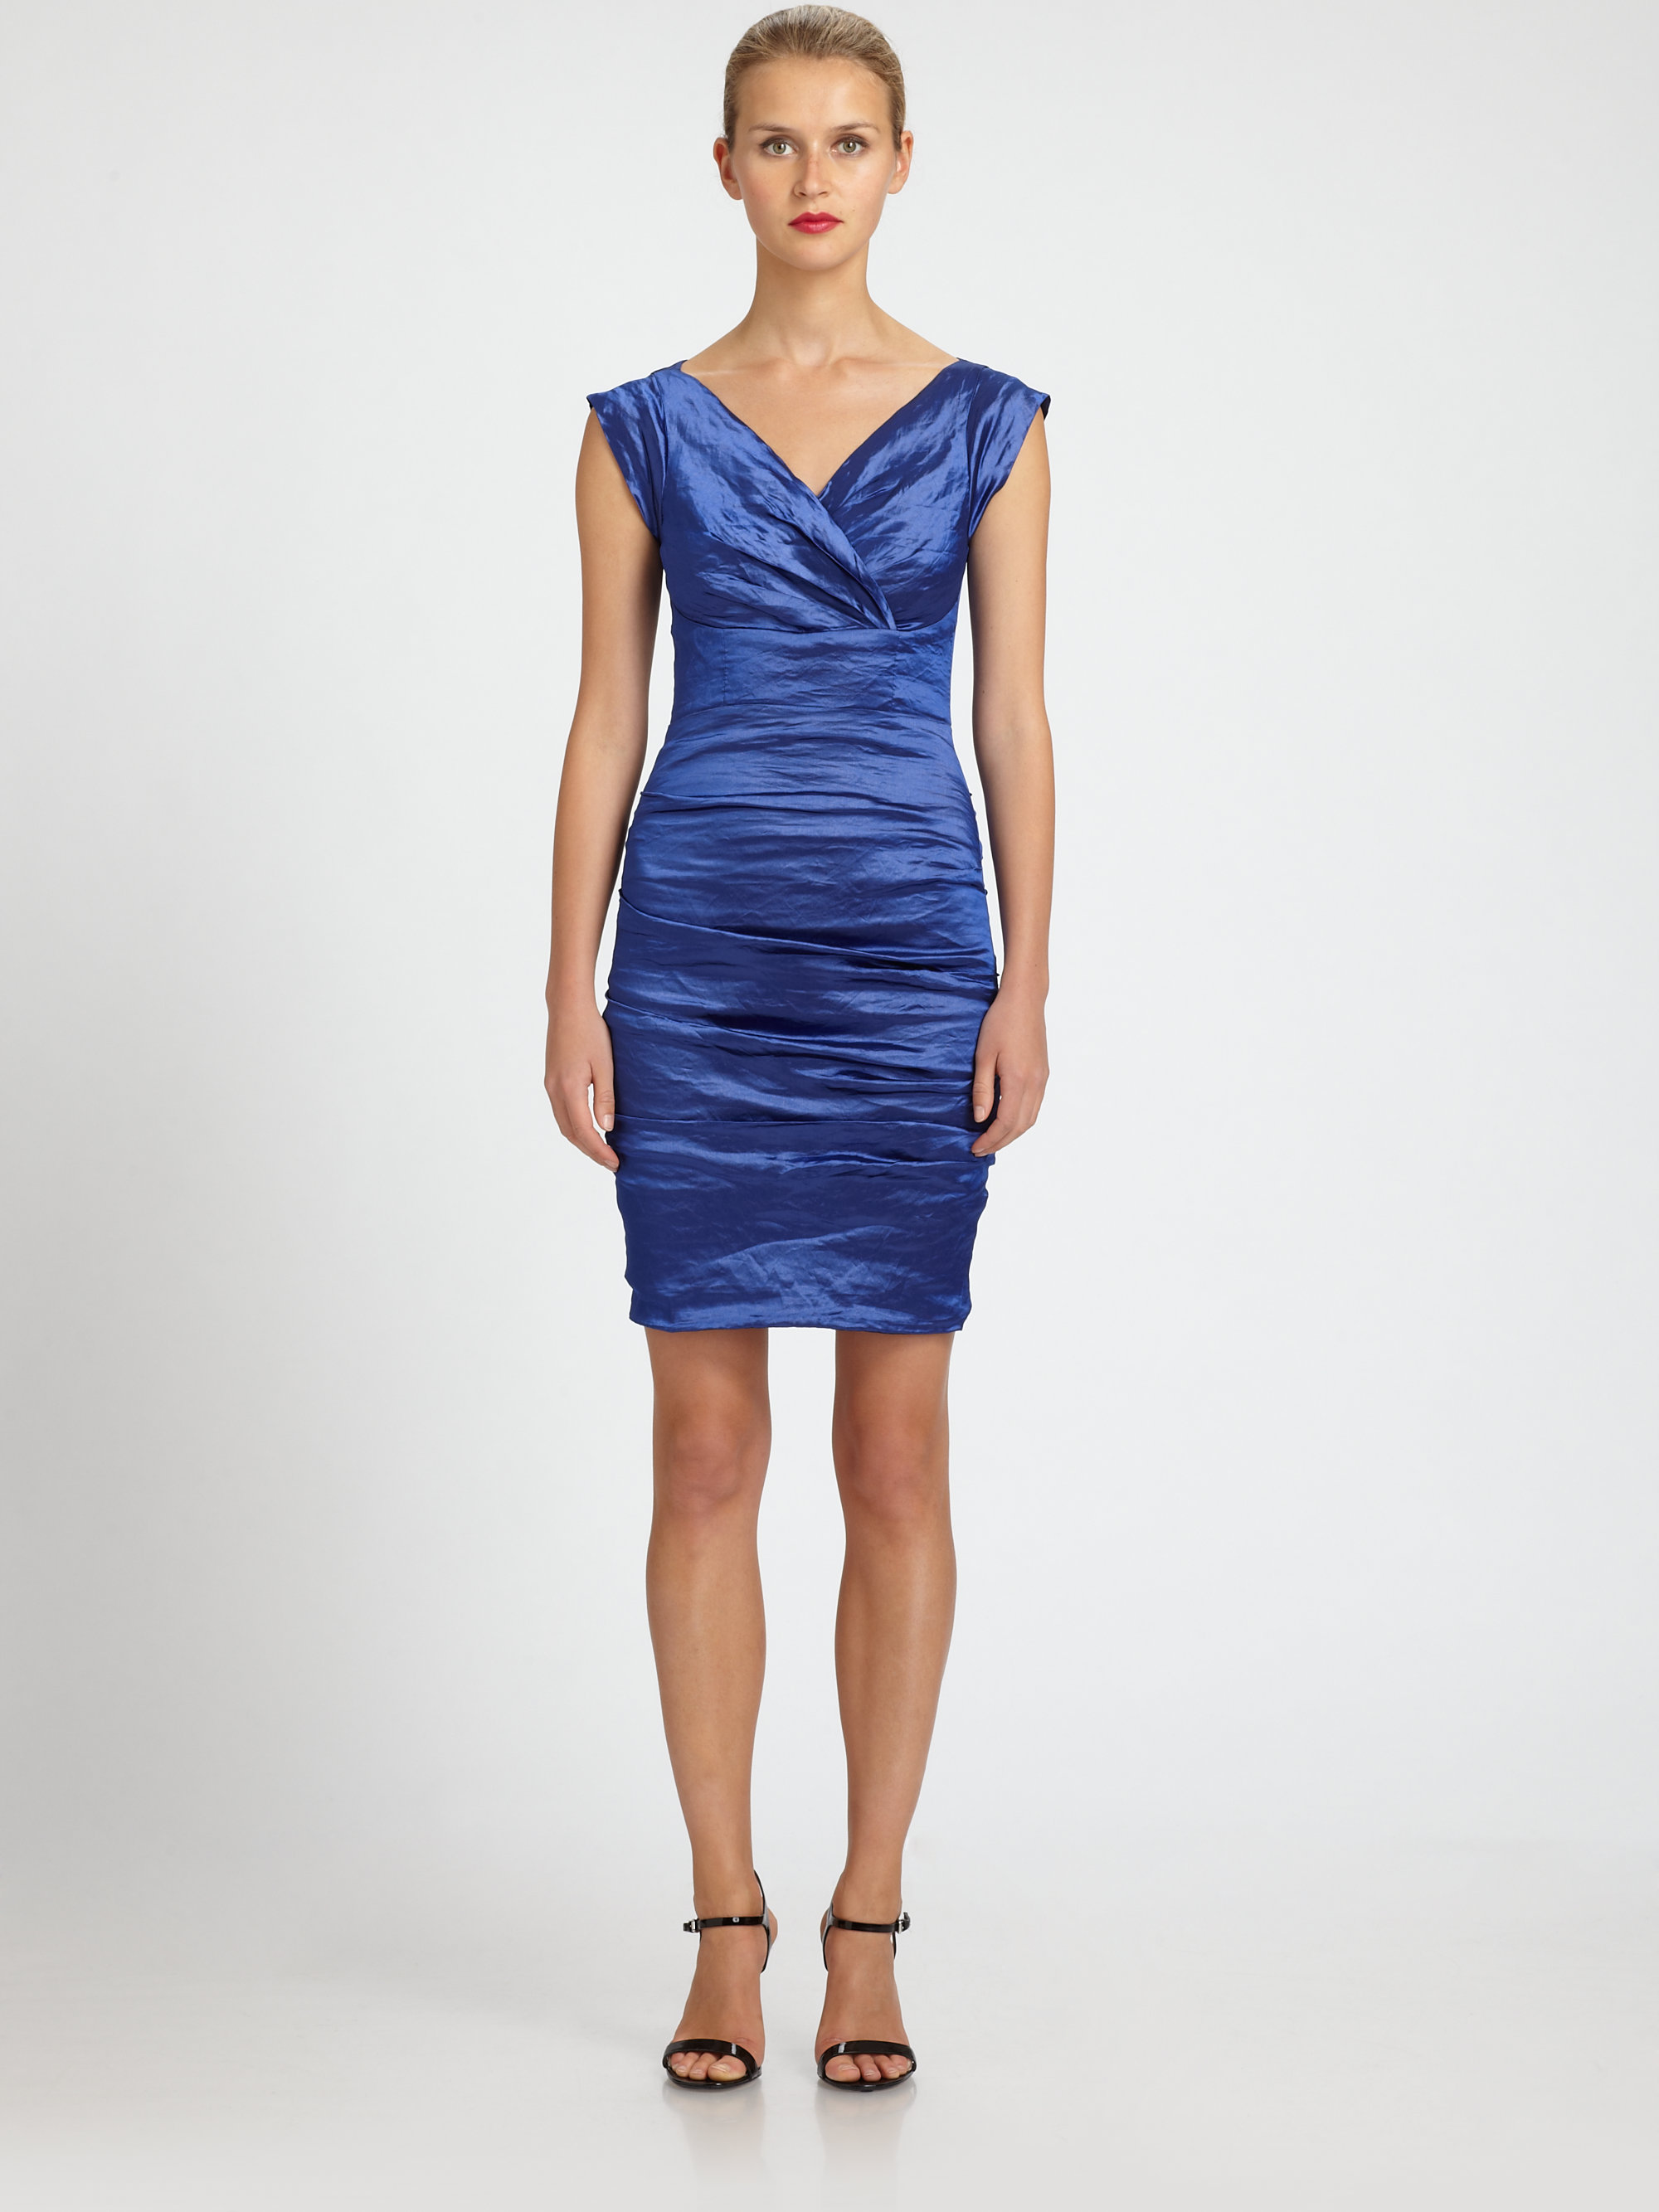 Lyst Nicole Miller Ruched Taffeta Dress In Blue